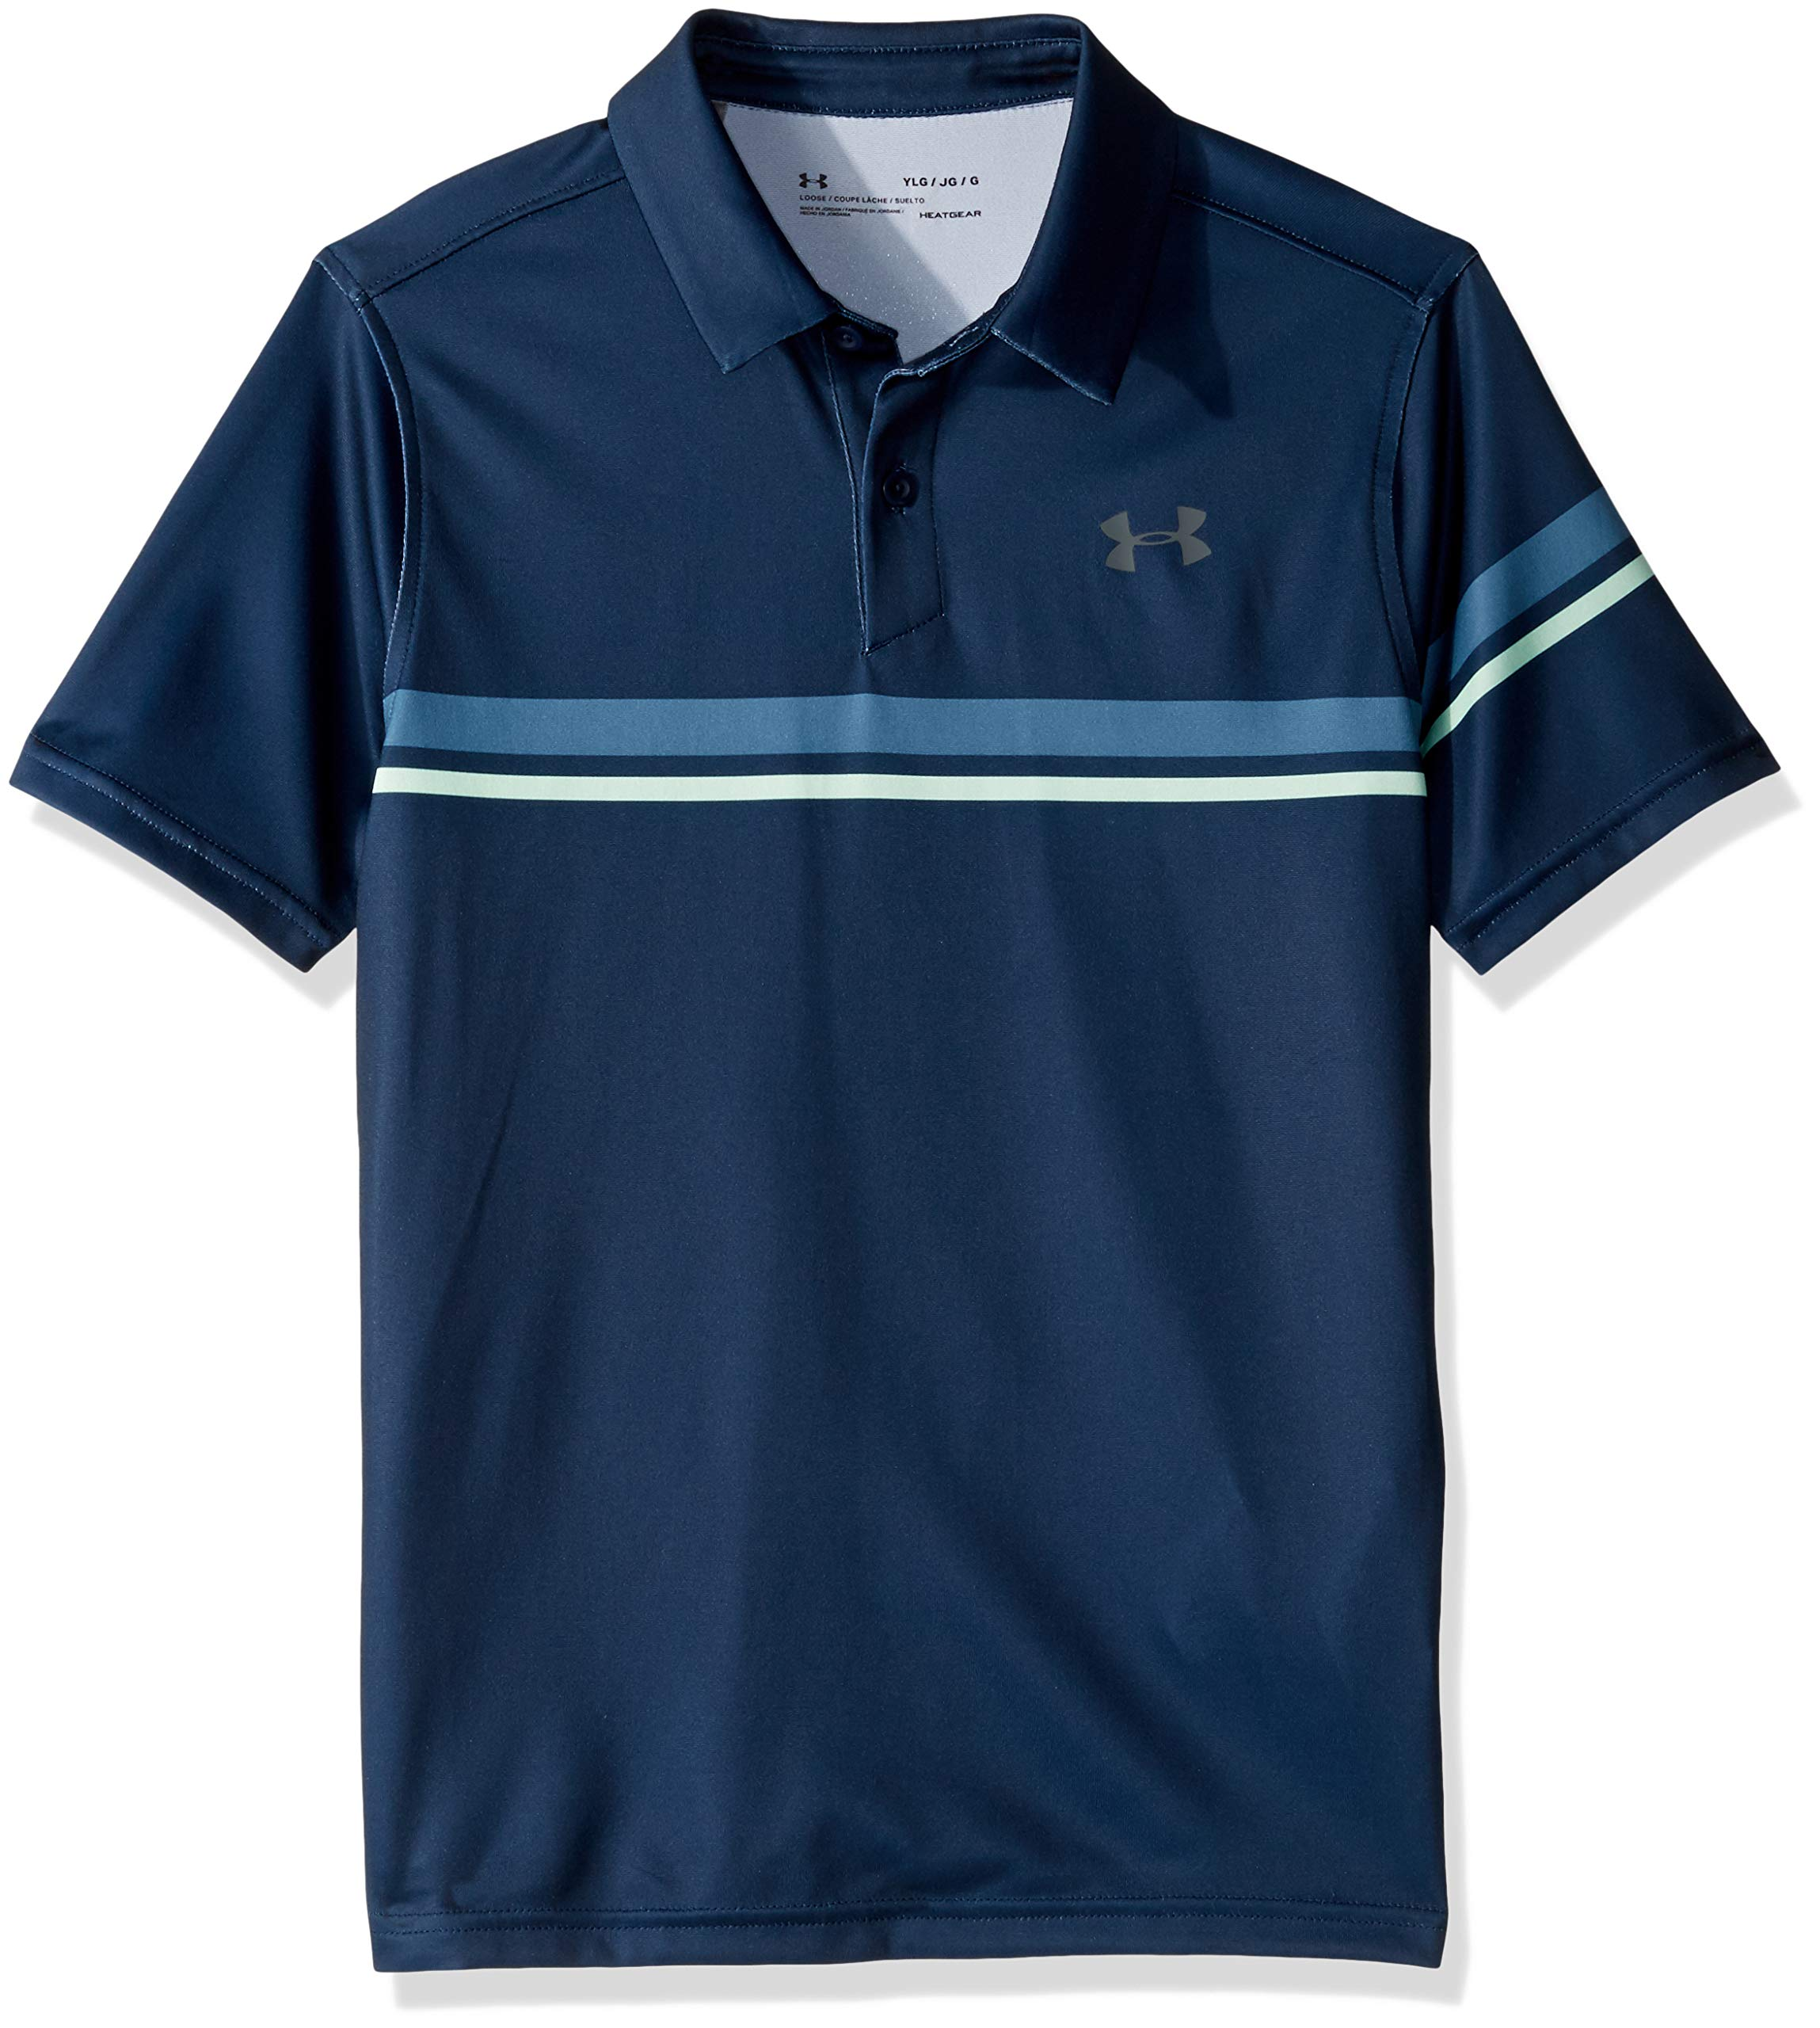 Under Armour Jordan Spieth 1st Major Sunday Polo, Academy//Pitch Gray, Youth Large by Under Armour